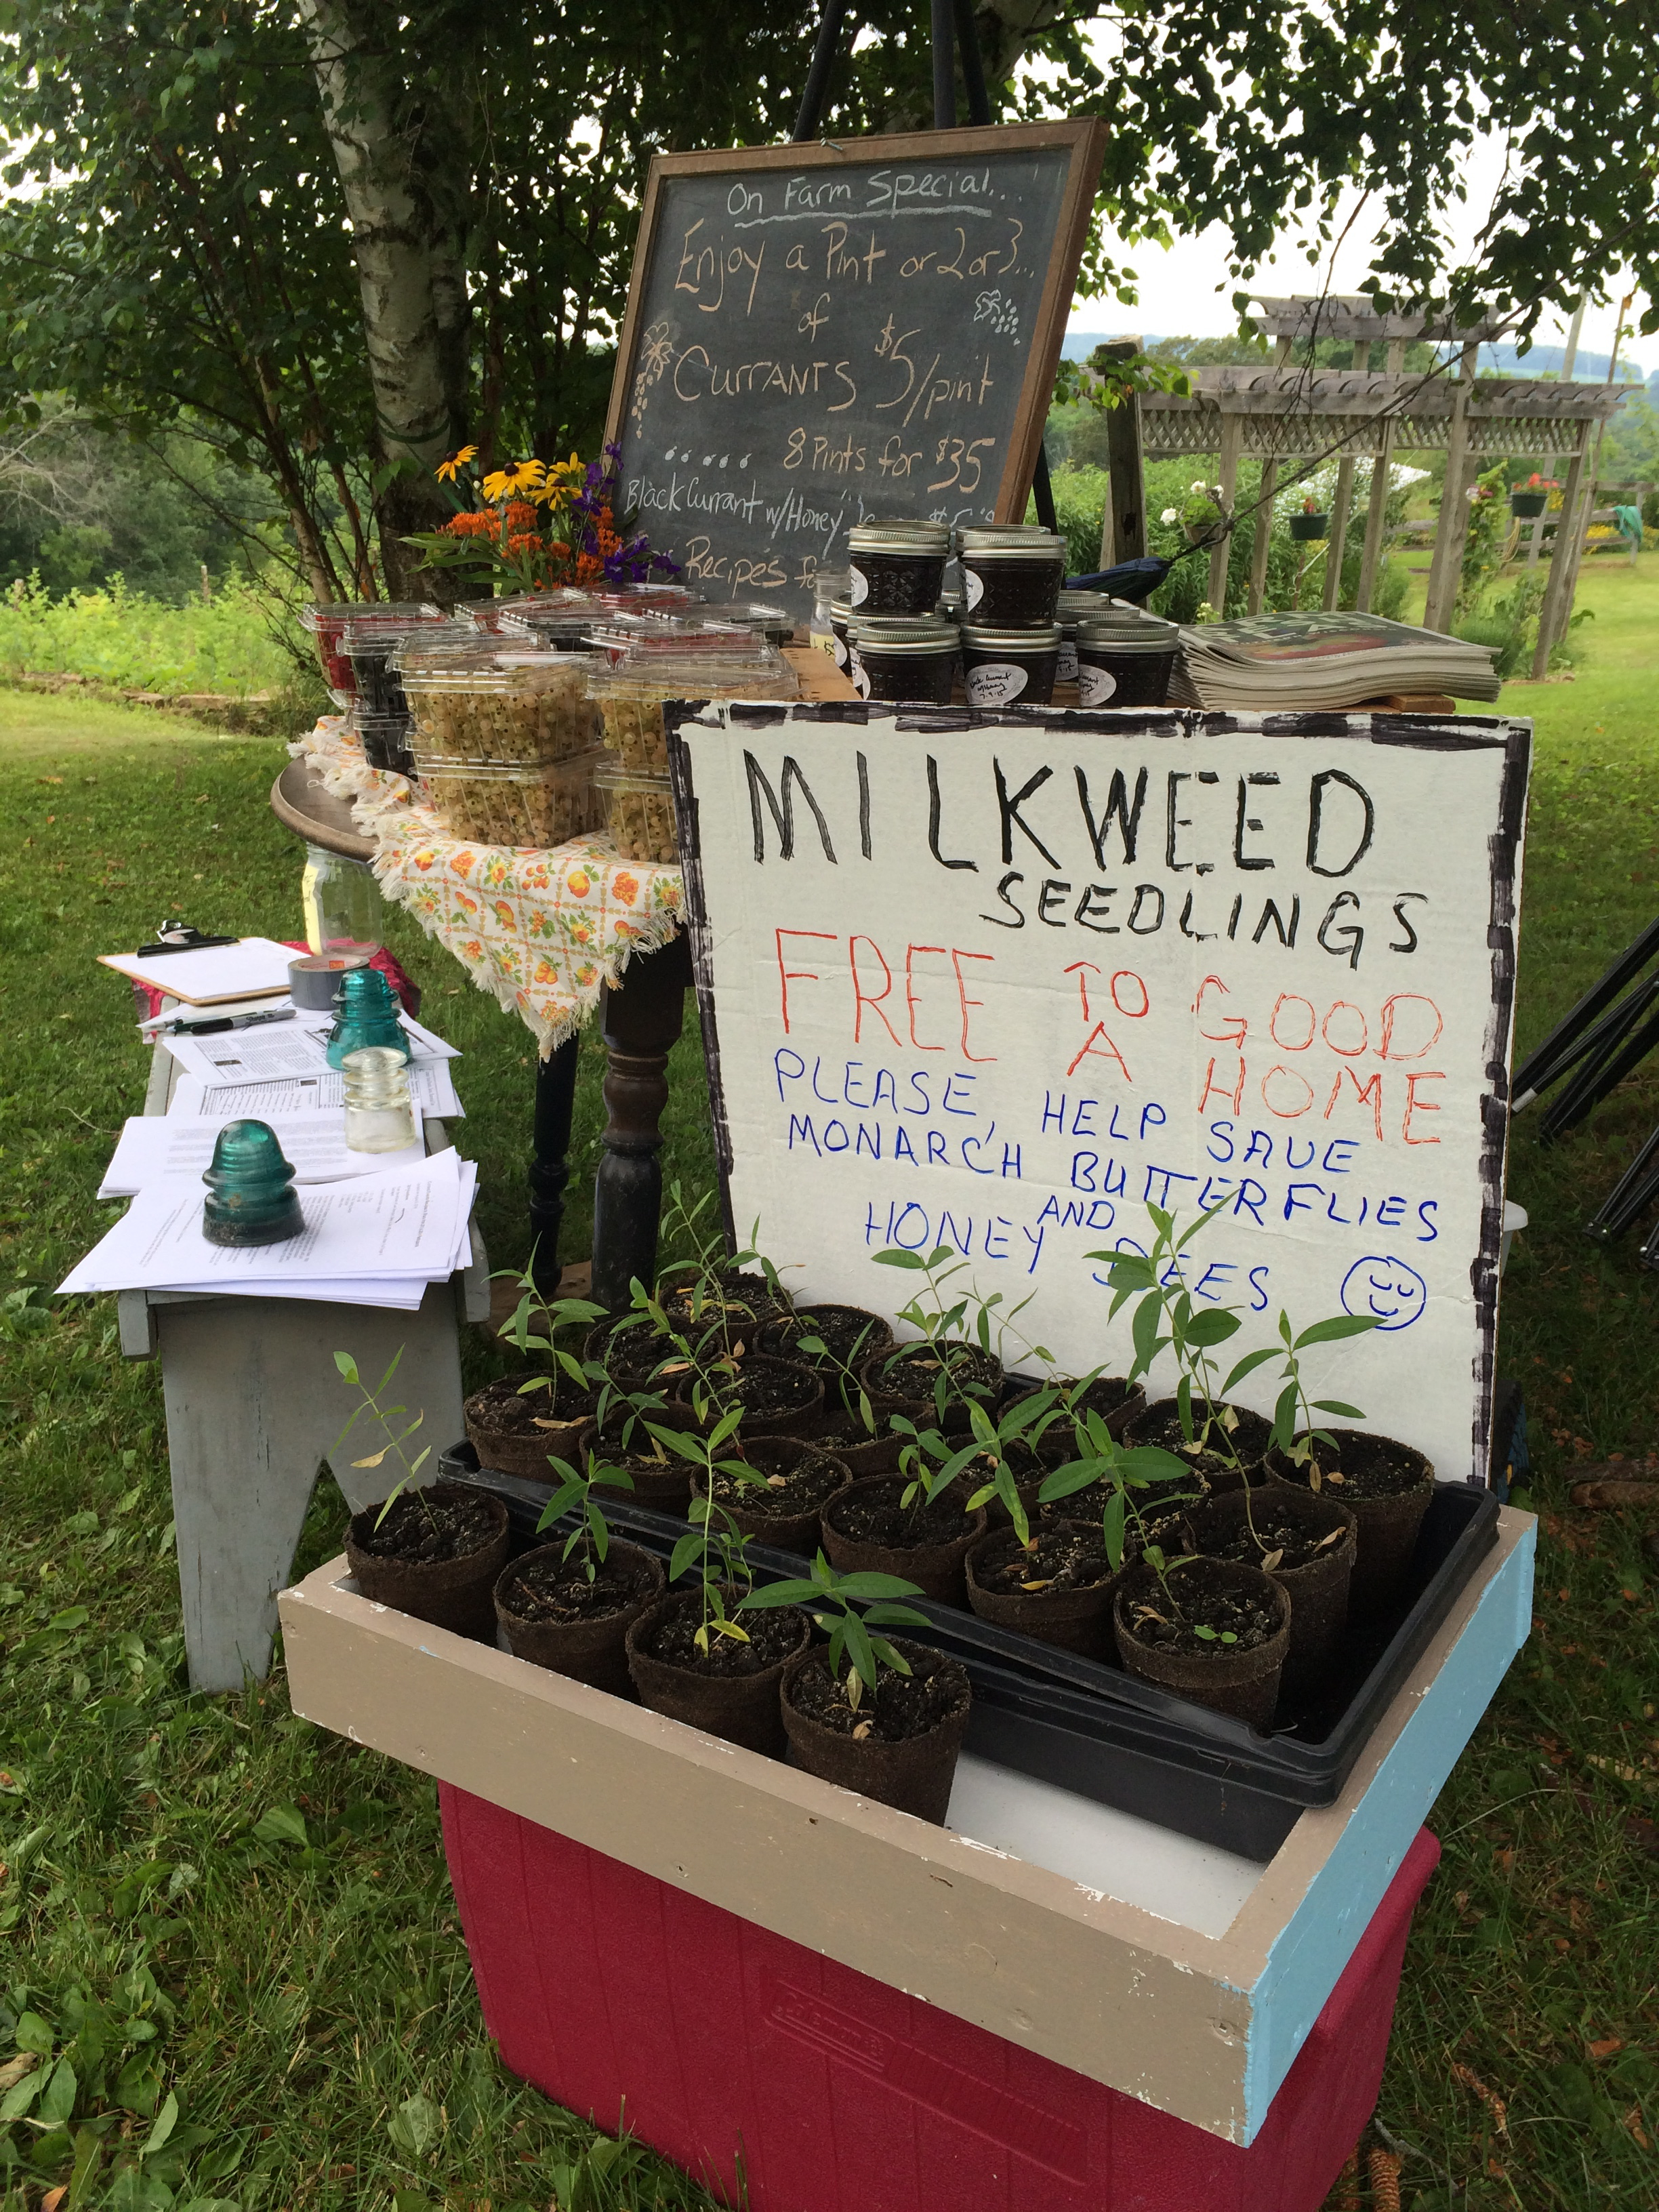 Milkweed seedlings grown and shared by farm neighbor and fellow beekeeper Dennis Hanger, during this summer's Picnic in the Orchard. Photo by Ian Aley